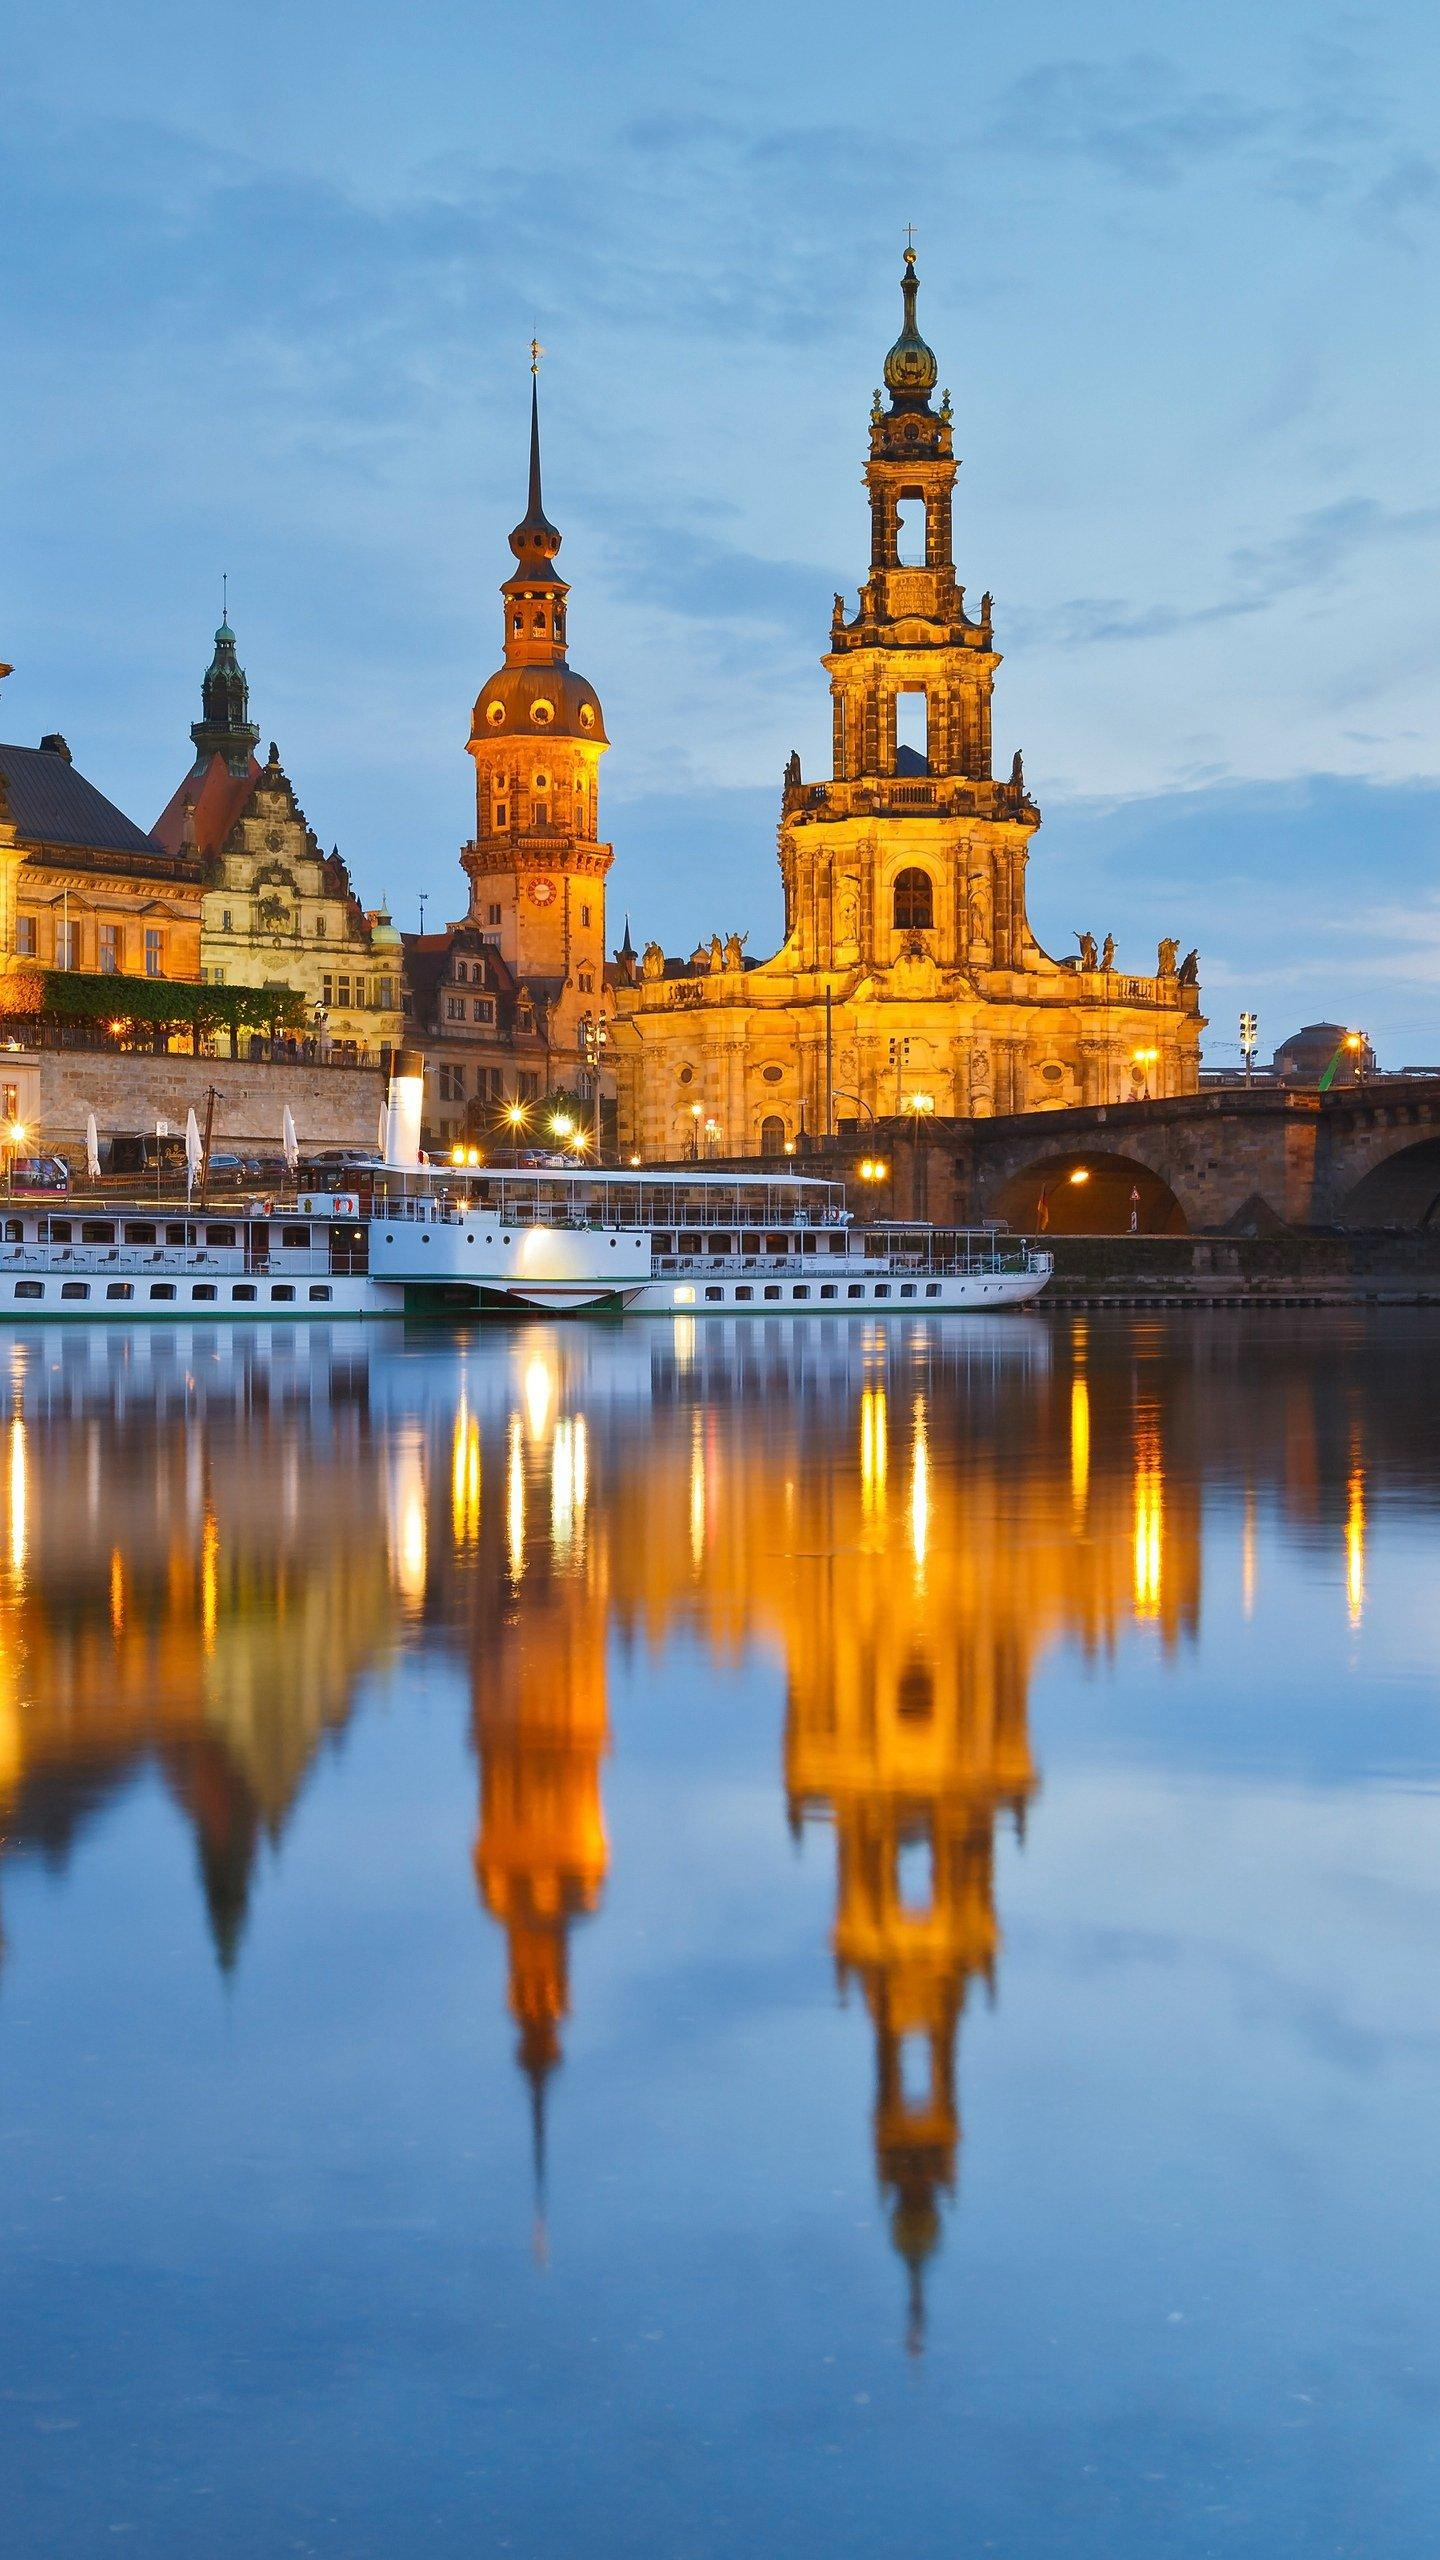 """Germany's most beautiful city. Dresden is Germany's """"cultural endorsement"""", which not only has hundreds of years of prosperity, but also brilliant literature and art."""